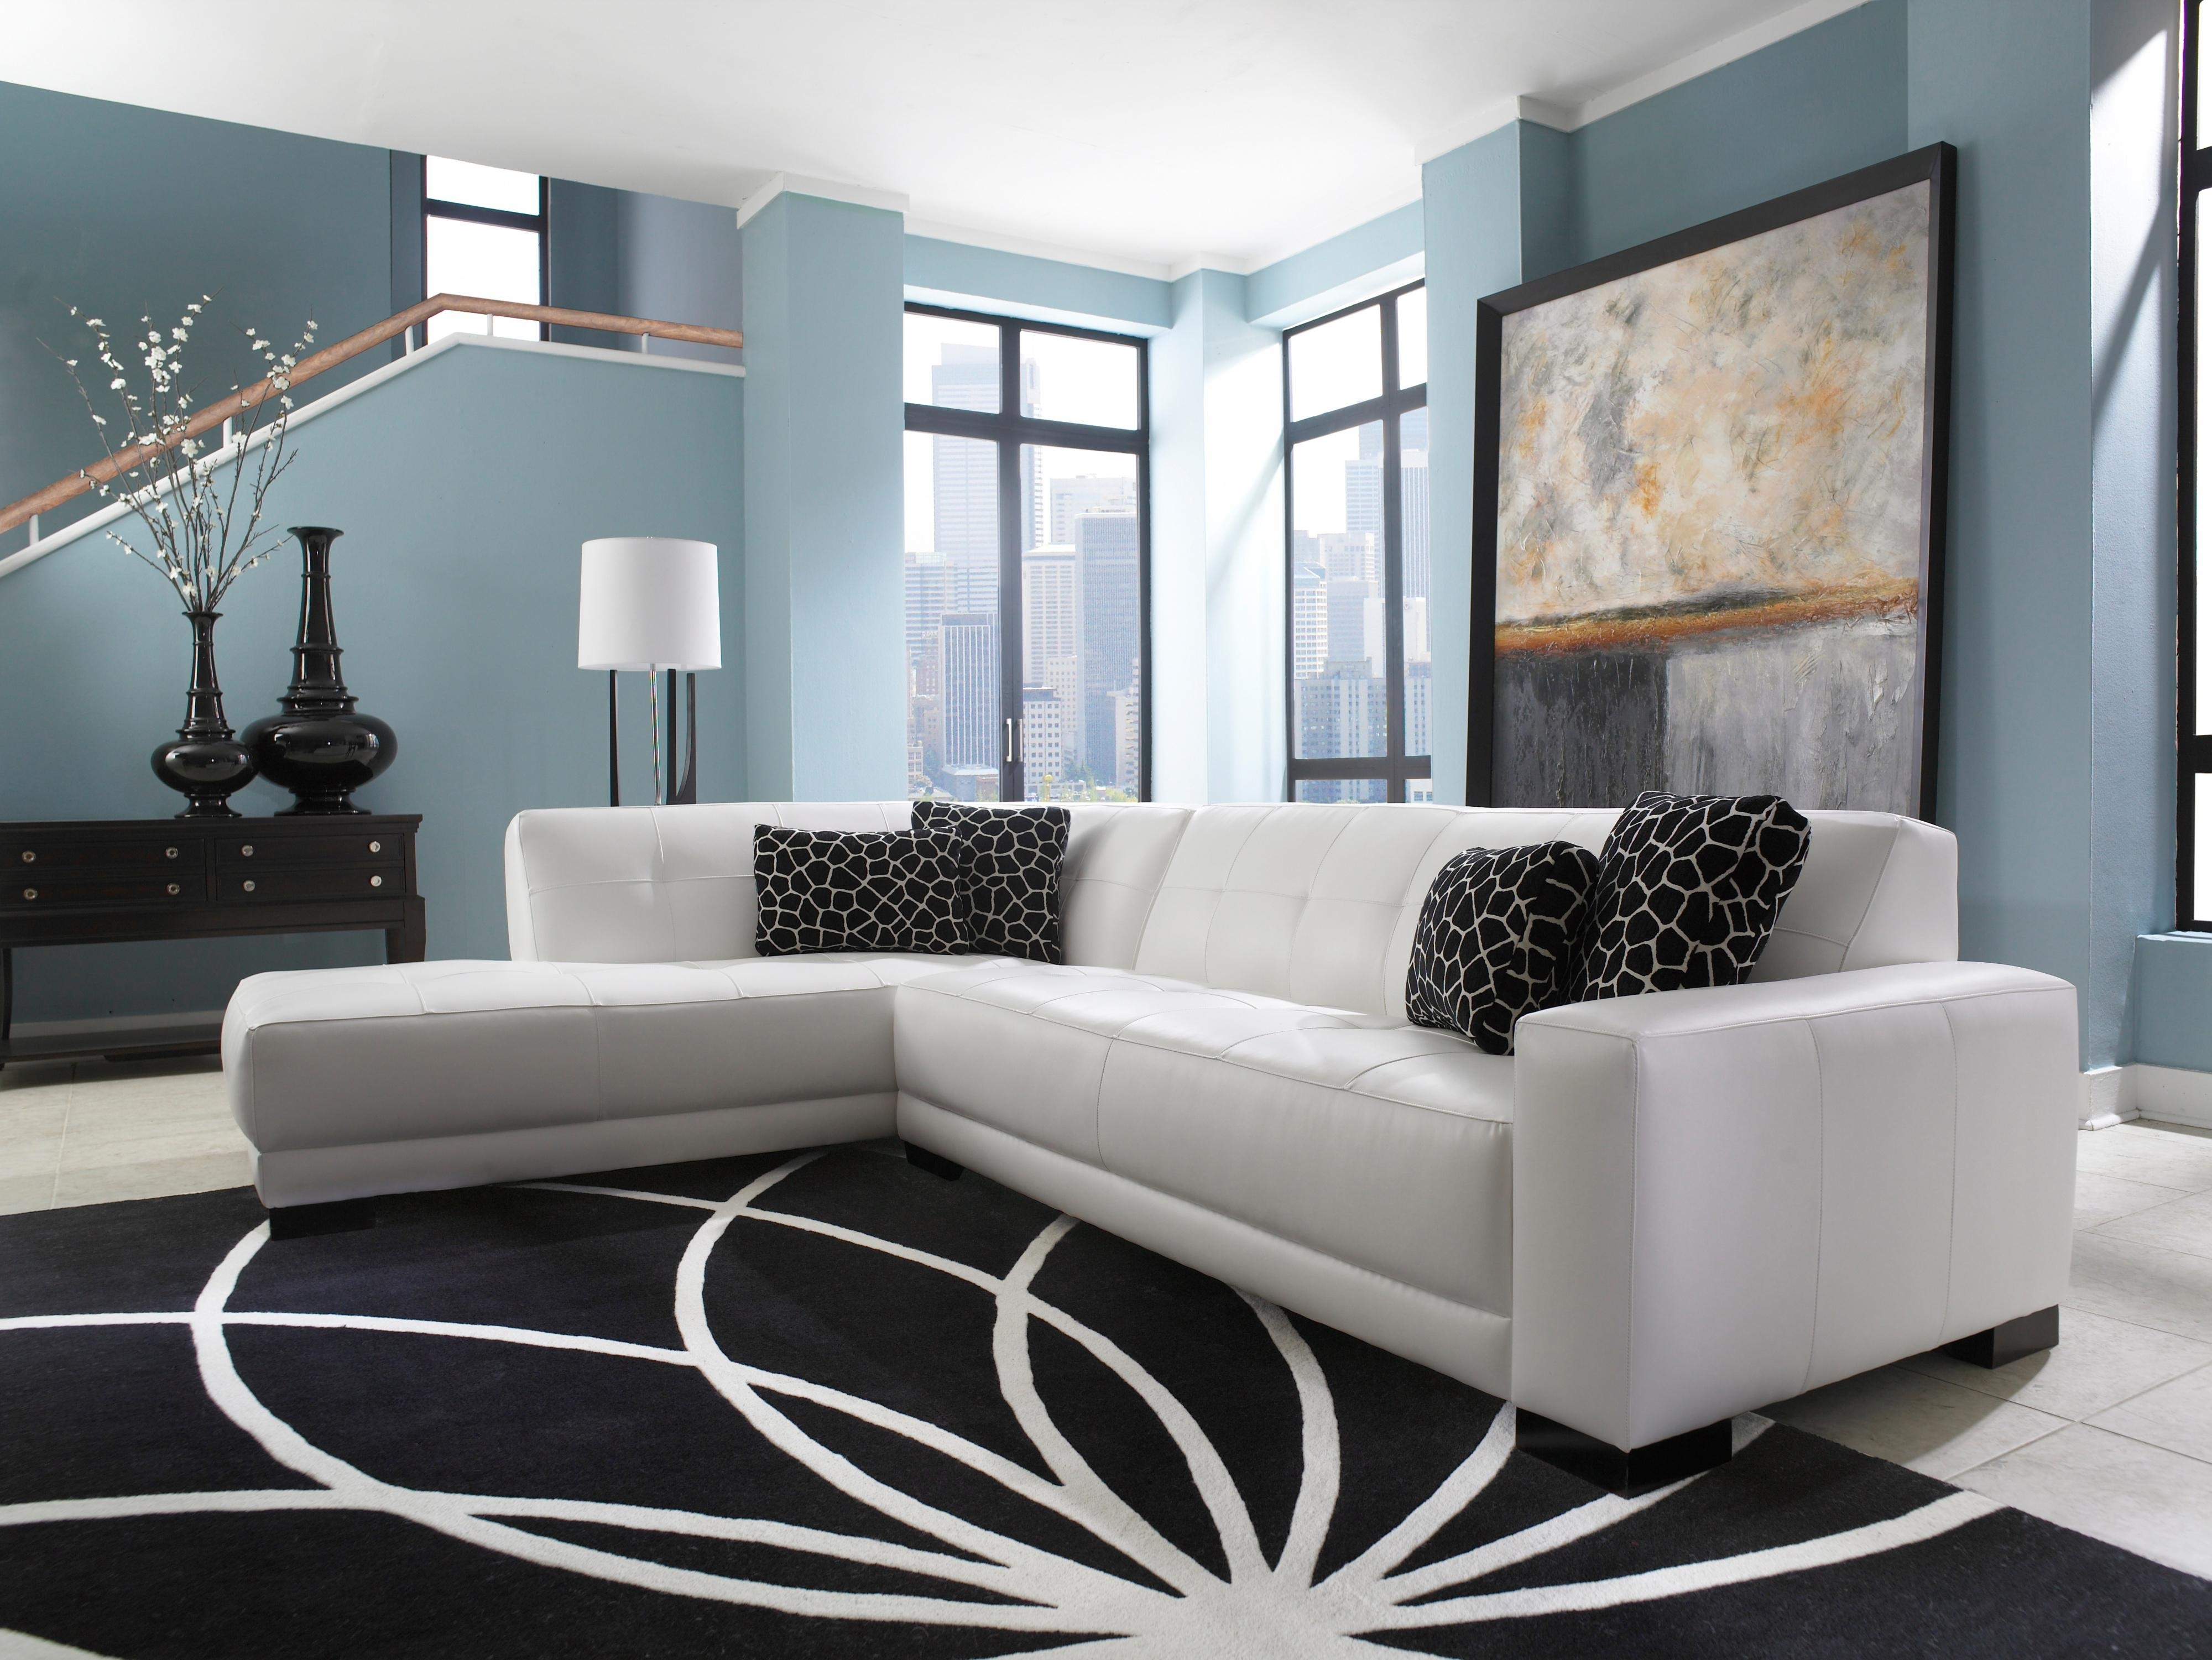 Famous Dania Sectional Sofas In Bedroom: Exciting Furniture Design With Cozy Dania Furniture (View 8 of 15)